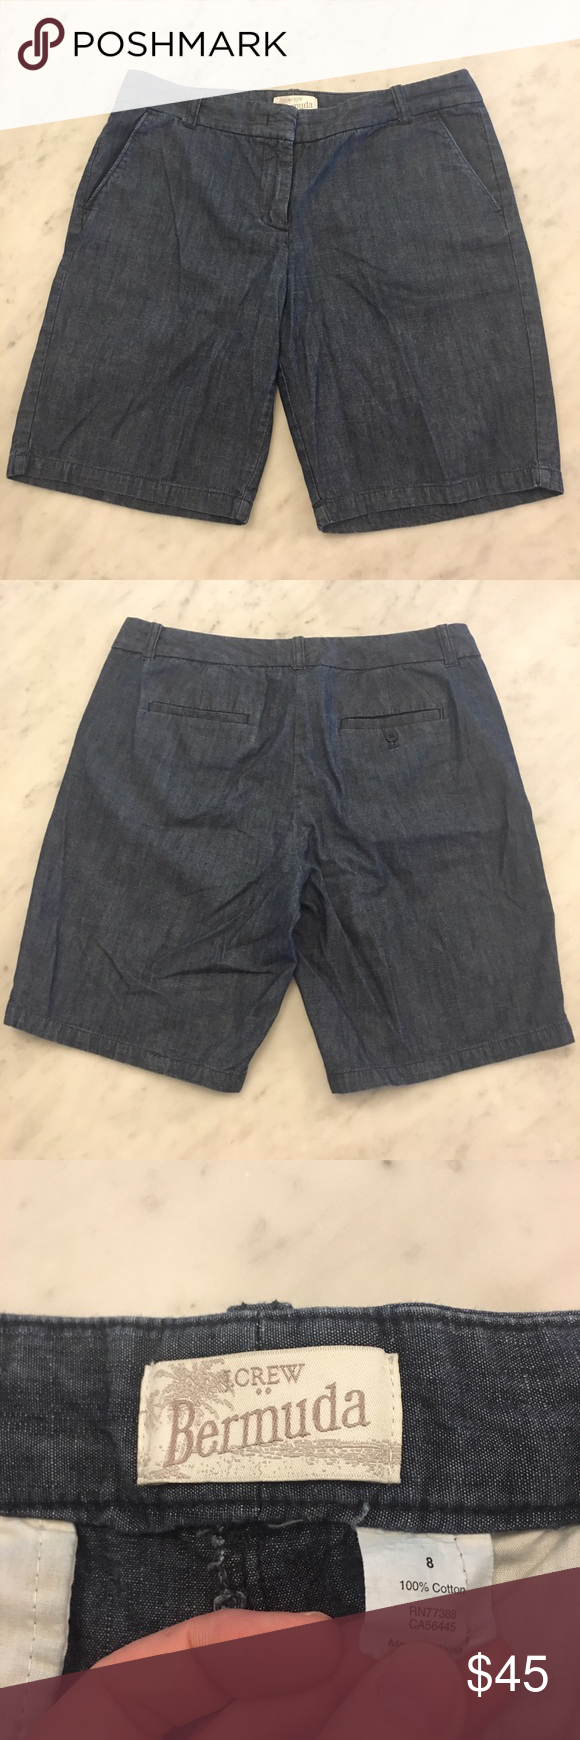 🌺SALE🌺J. Crew blue Bermuda shorts These are in good used condition. These are a size 8. Super cute Bermuda shorts, they go with everything. Get them just in time for warmer weather. These are blue in color to look like denim. J. Crew Shorts Bermudas